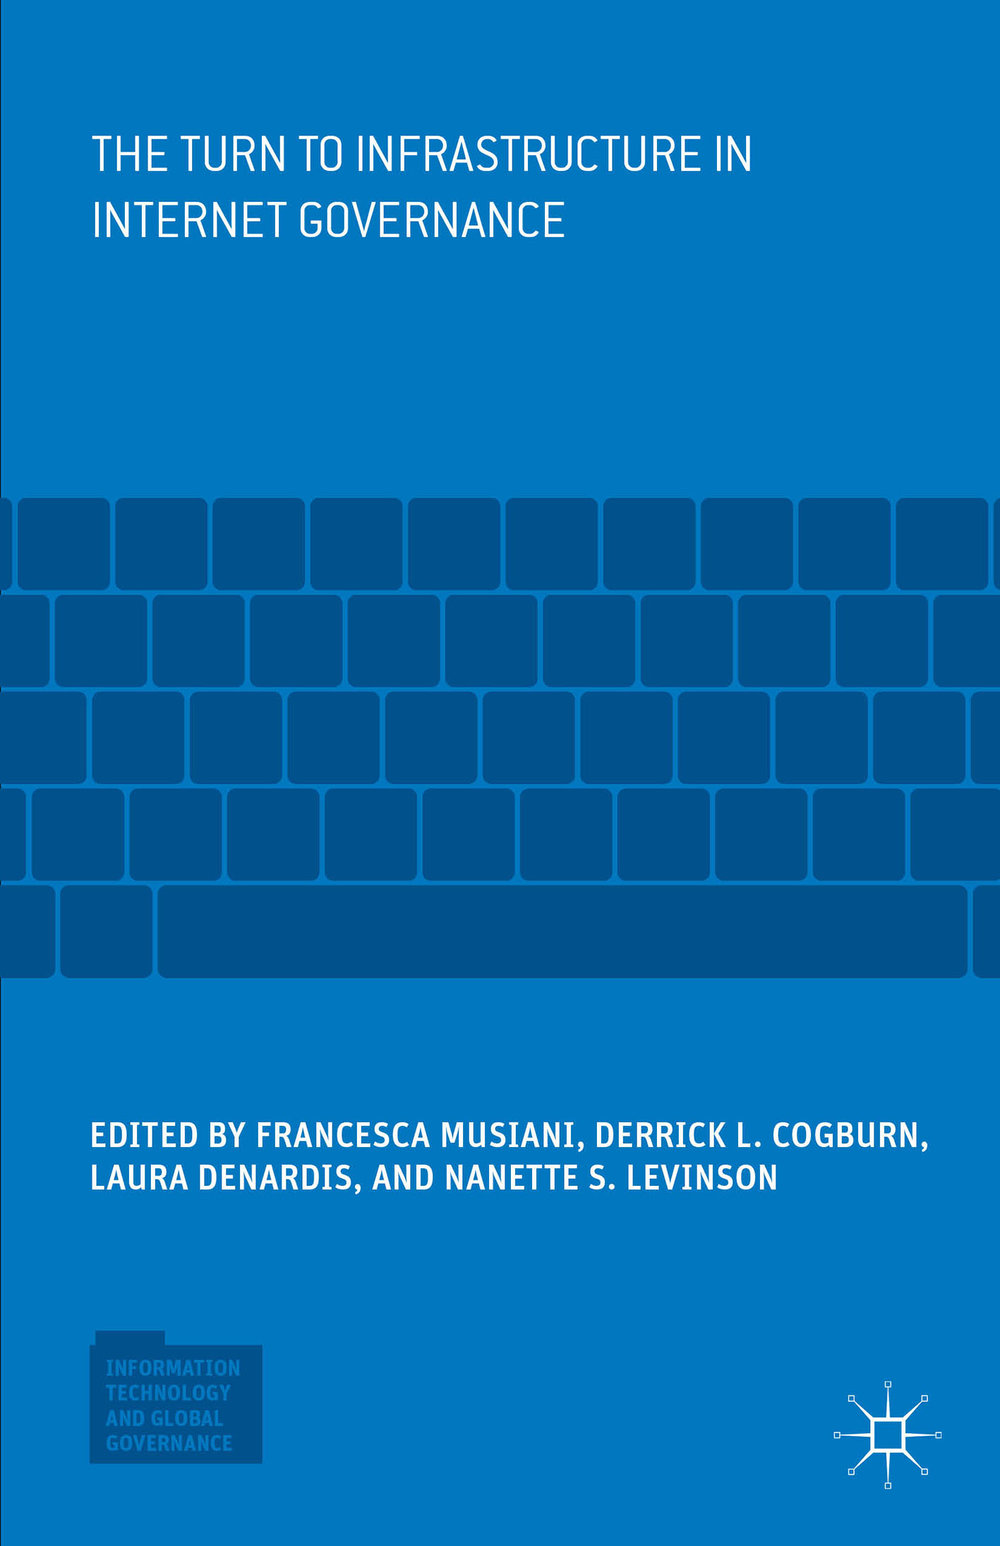 The Turn to Infrastructure in Internet Governance Book Cover.jpg